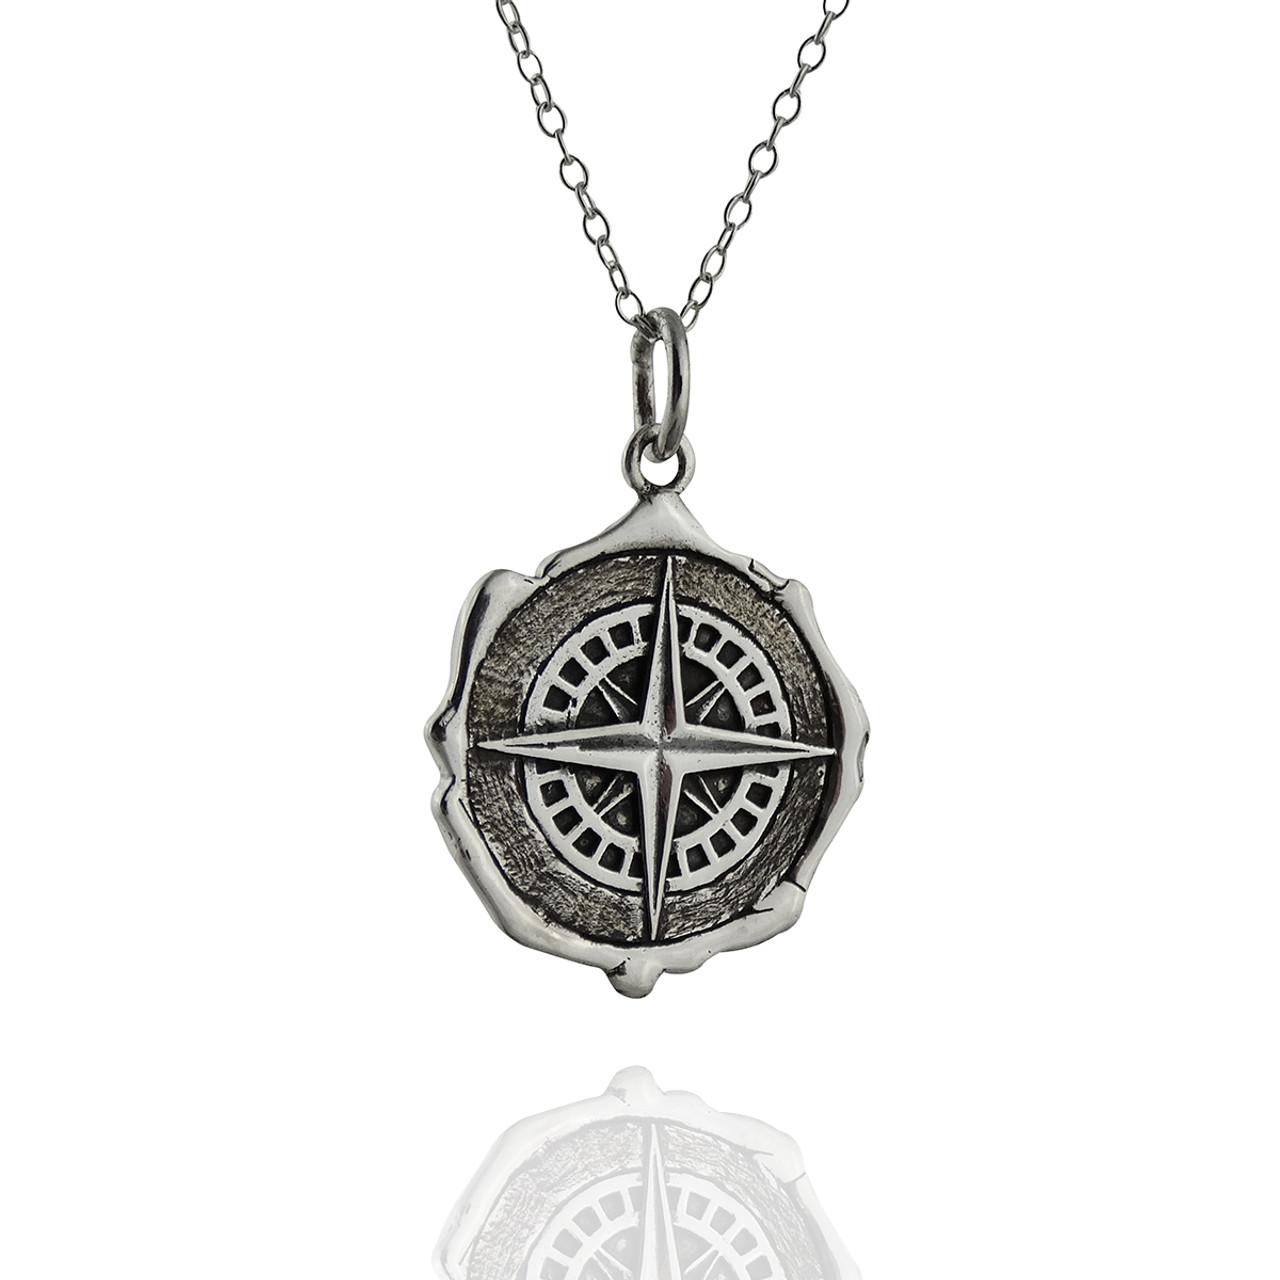 3b7102a1672d7d Wax Seal Compass Necklace - Sterling Silver - FashionJunkie4Life